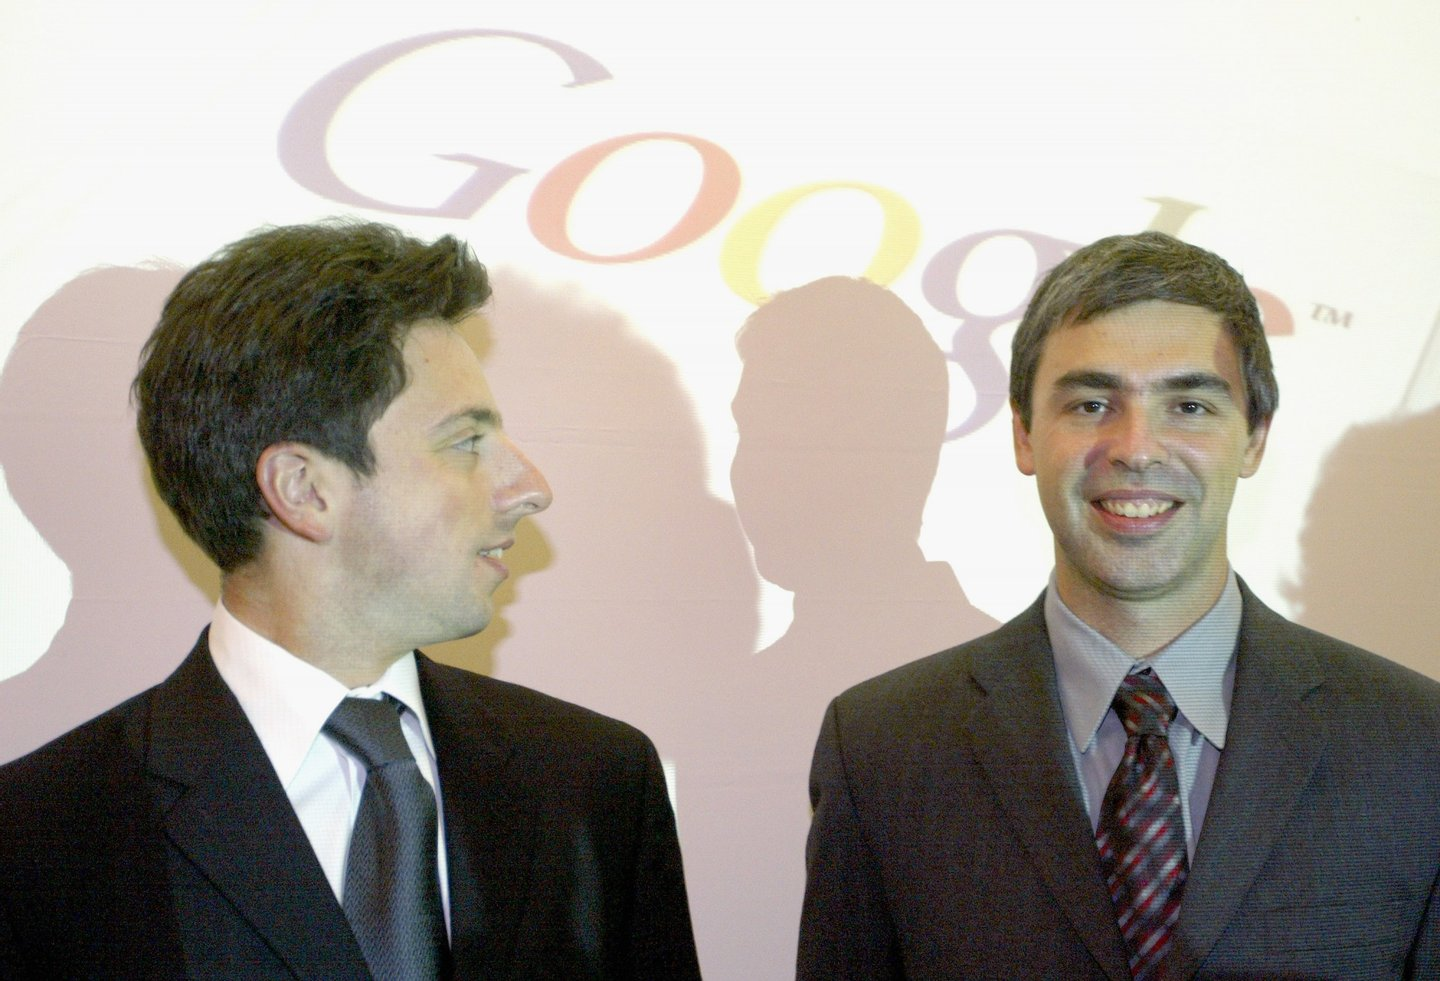 """FRANKFURT, GERMANY - OCTOBER 7: Google founders Sergey Brin (L) and Larry Page (R) joke prior to a news conference during the opening of the Frankfurt bookfair on October 7, 2004 in Frankfurt, Germany. The Frankfurt Bookfair is the world's largest event of it's type and this year's focal theme """"Literature of Arabia"""" will run until October 10, 2004. (Photo by Ralph Orlowski/Getty Images)"""